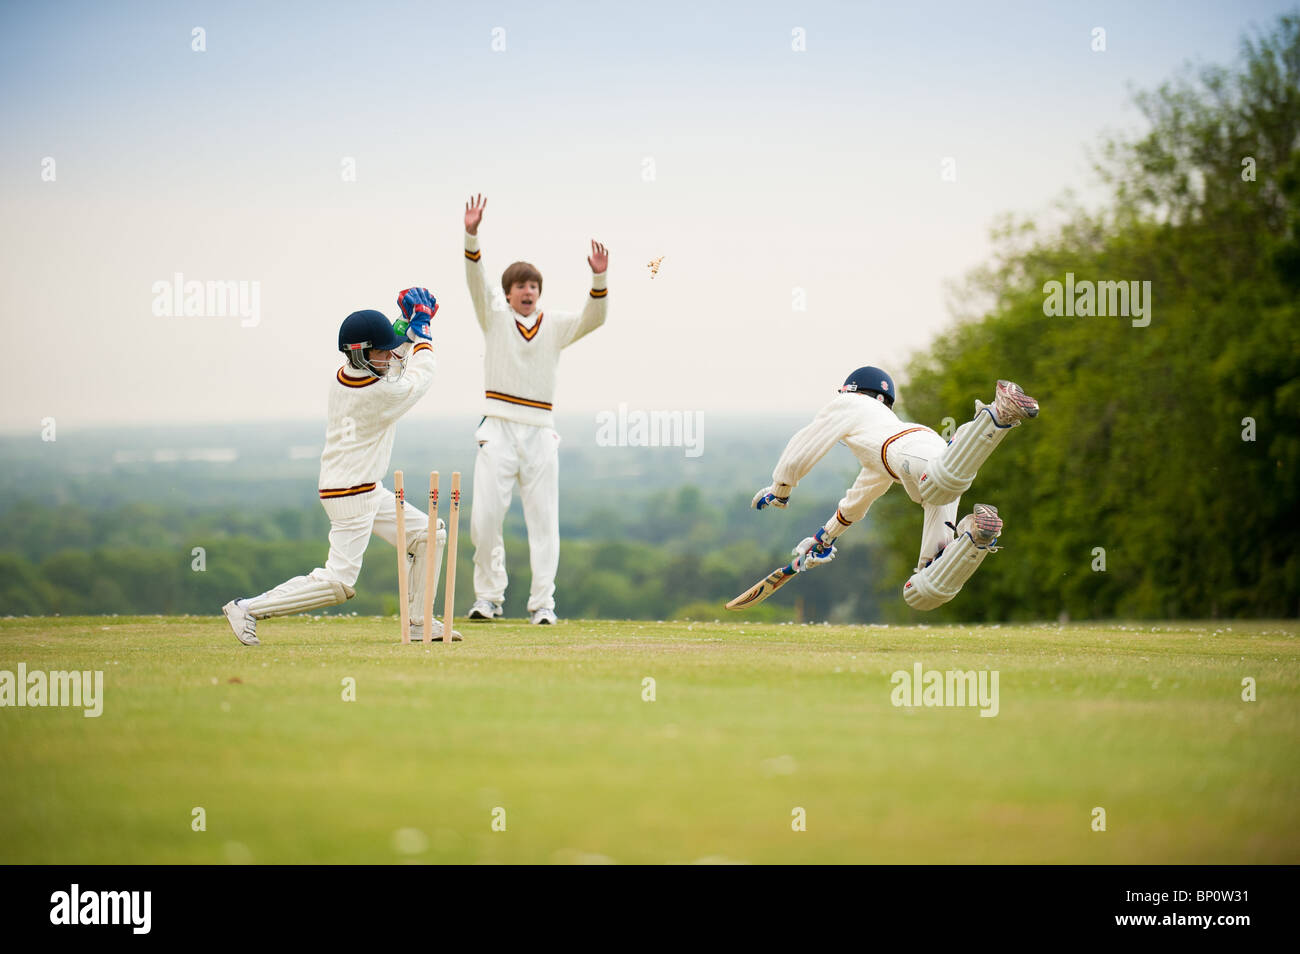 School cricket run out - Stock Image